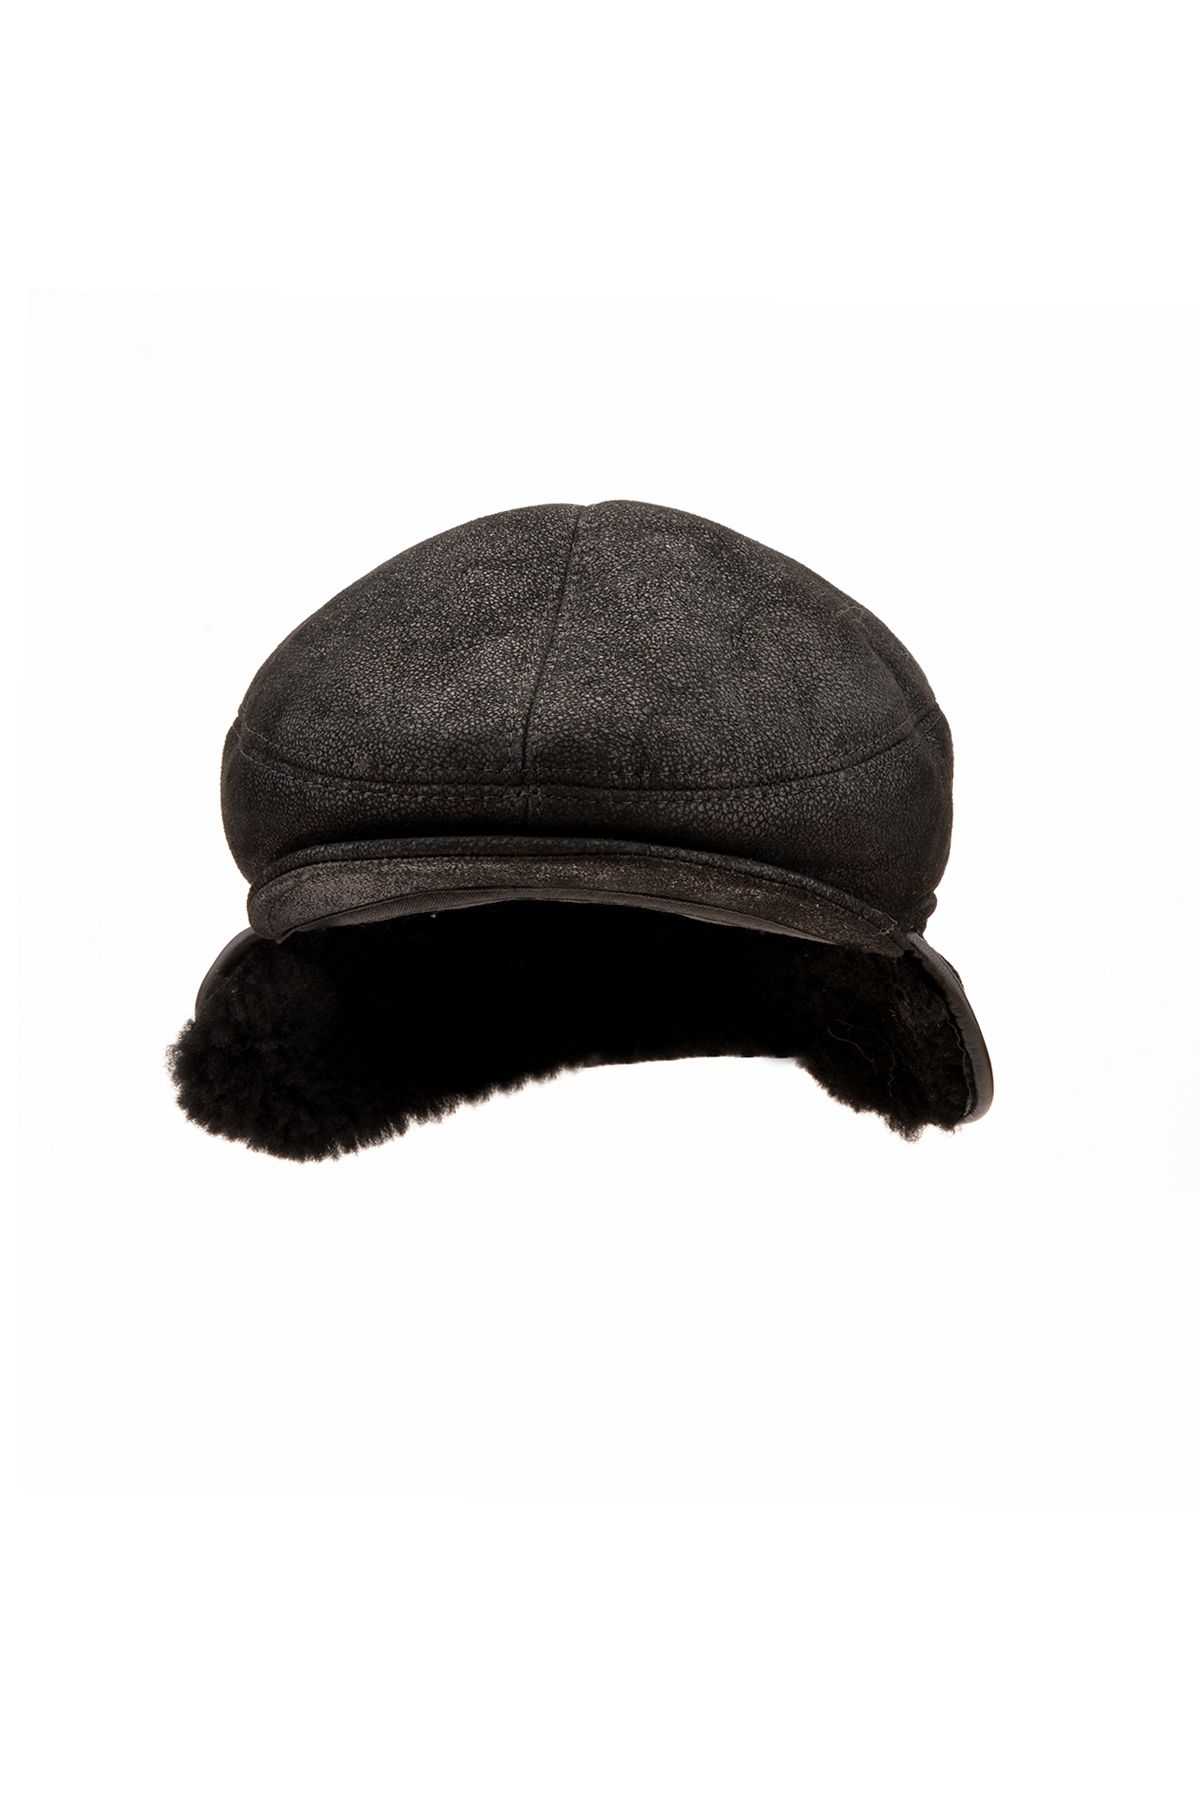 Pegia Peacked Cap From Vintage Leather And Genuine Fur Black